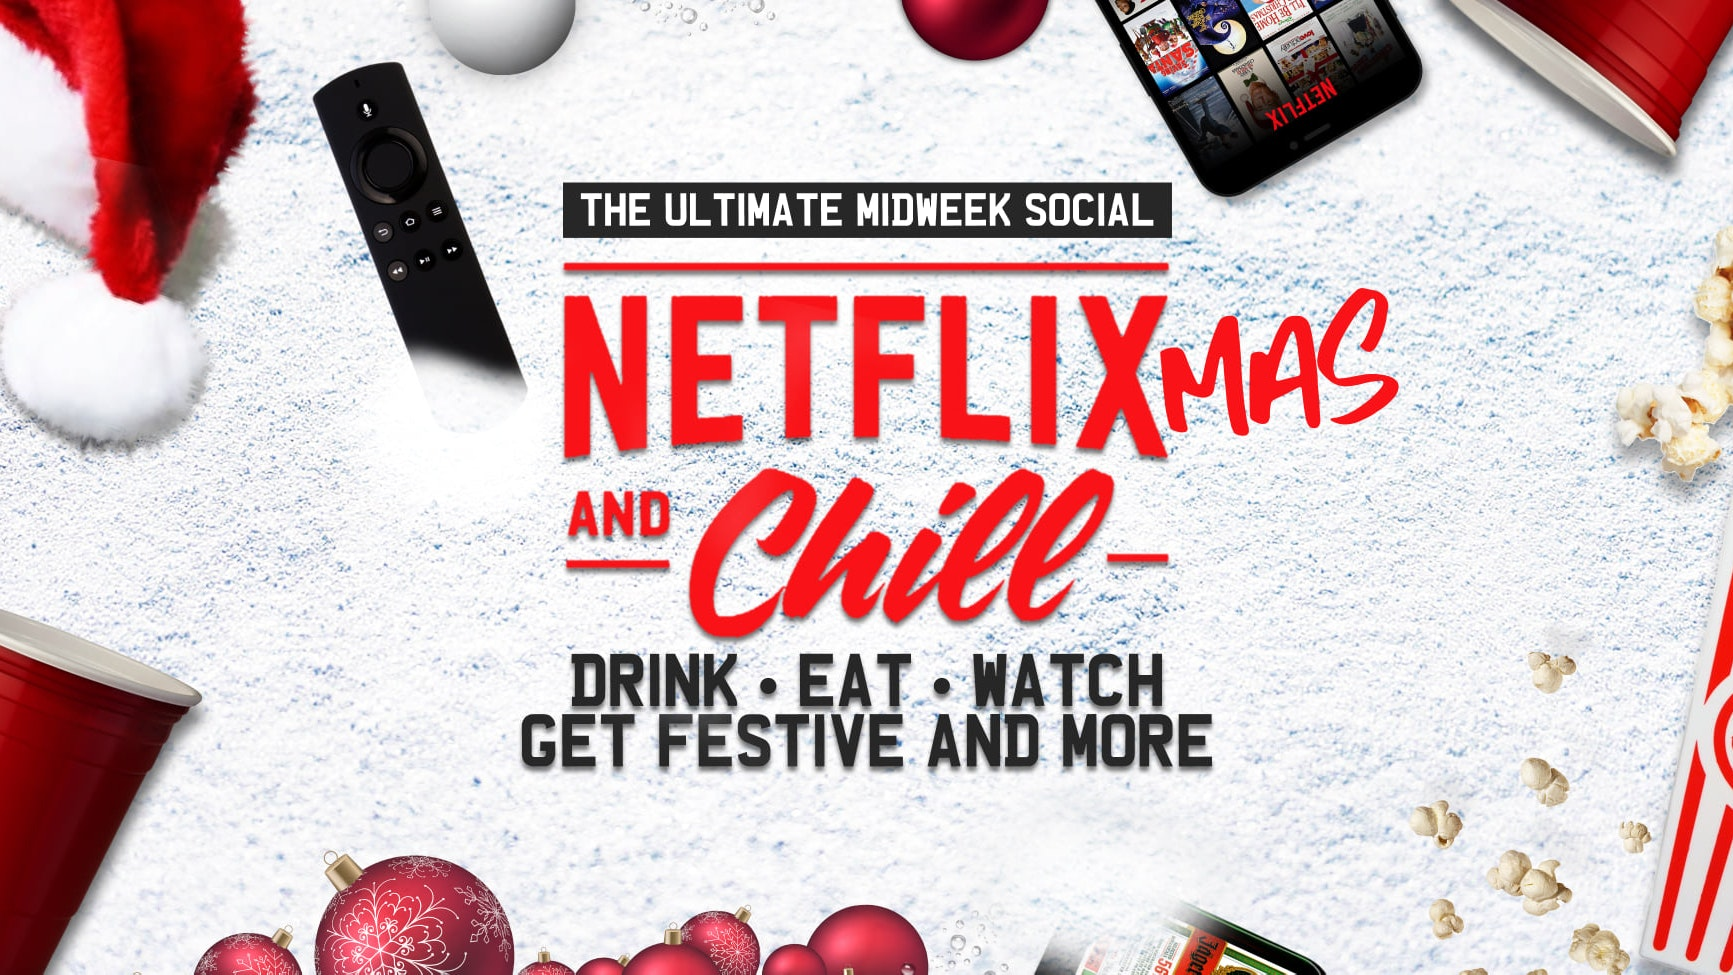 Netflix & Chill 👀 CHRISTMAS MOVIE NIGHT 🎄 Films = Love Actually & Elf ❄️